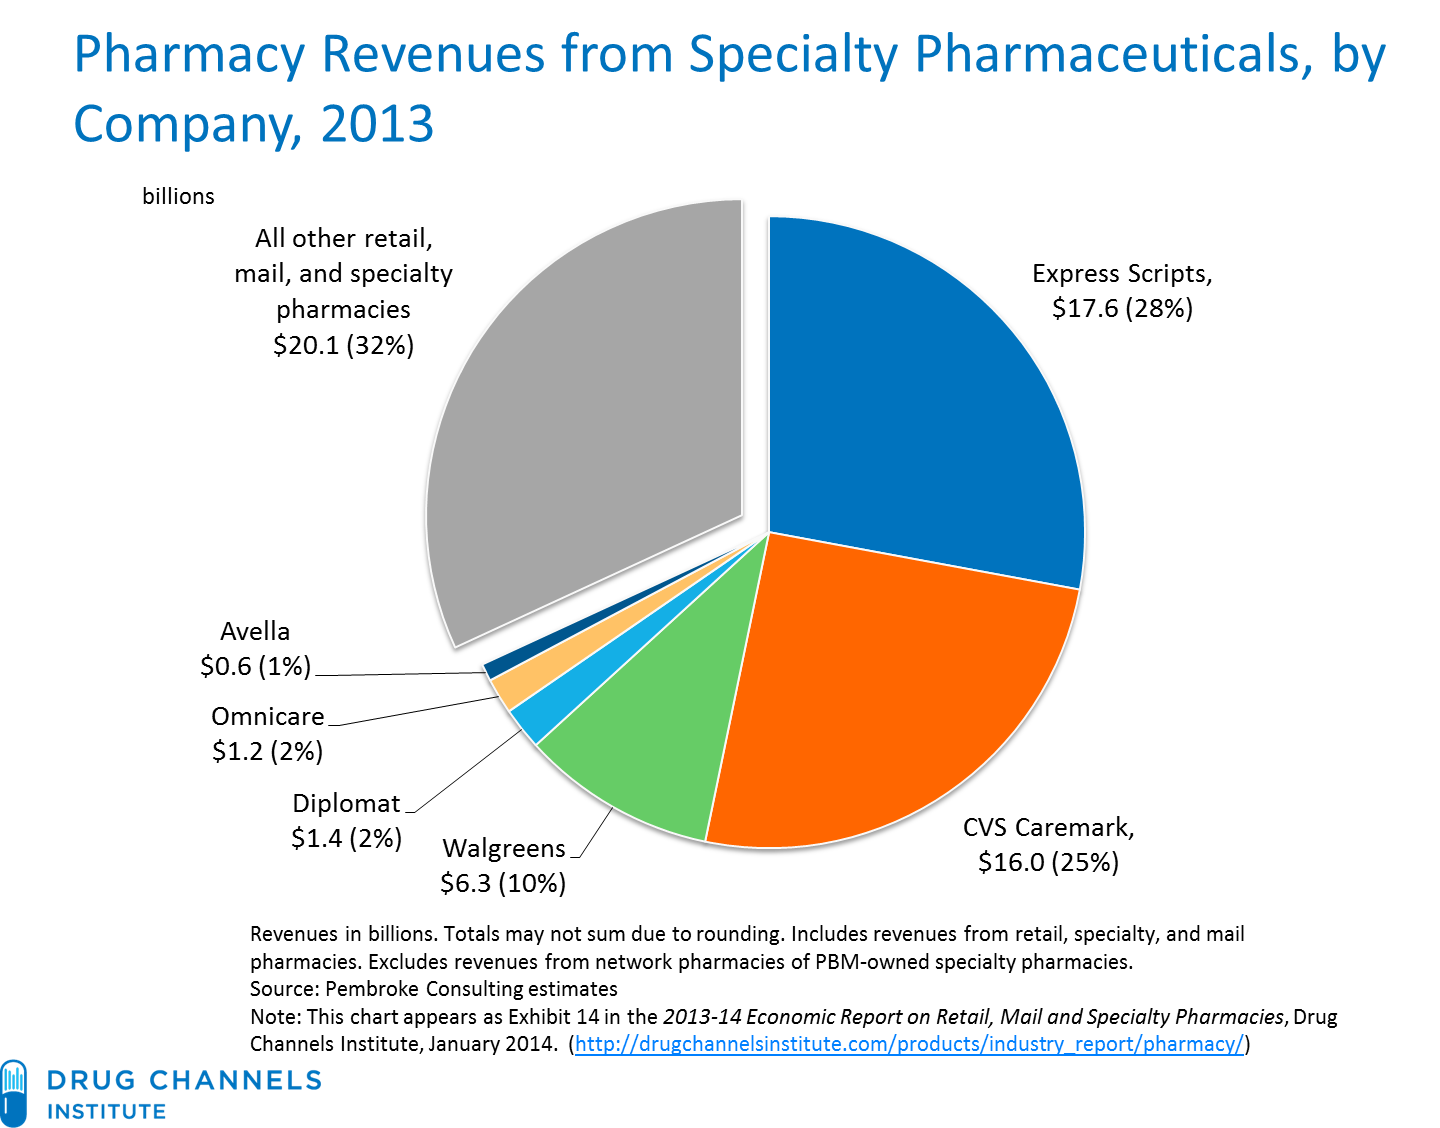 Drug Channels 2013 Pharmacy Market Share For Specialty